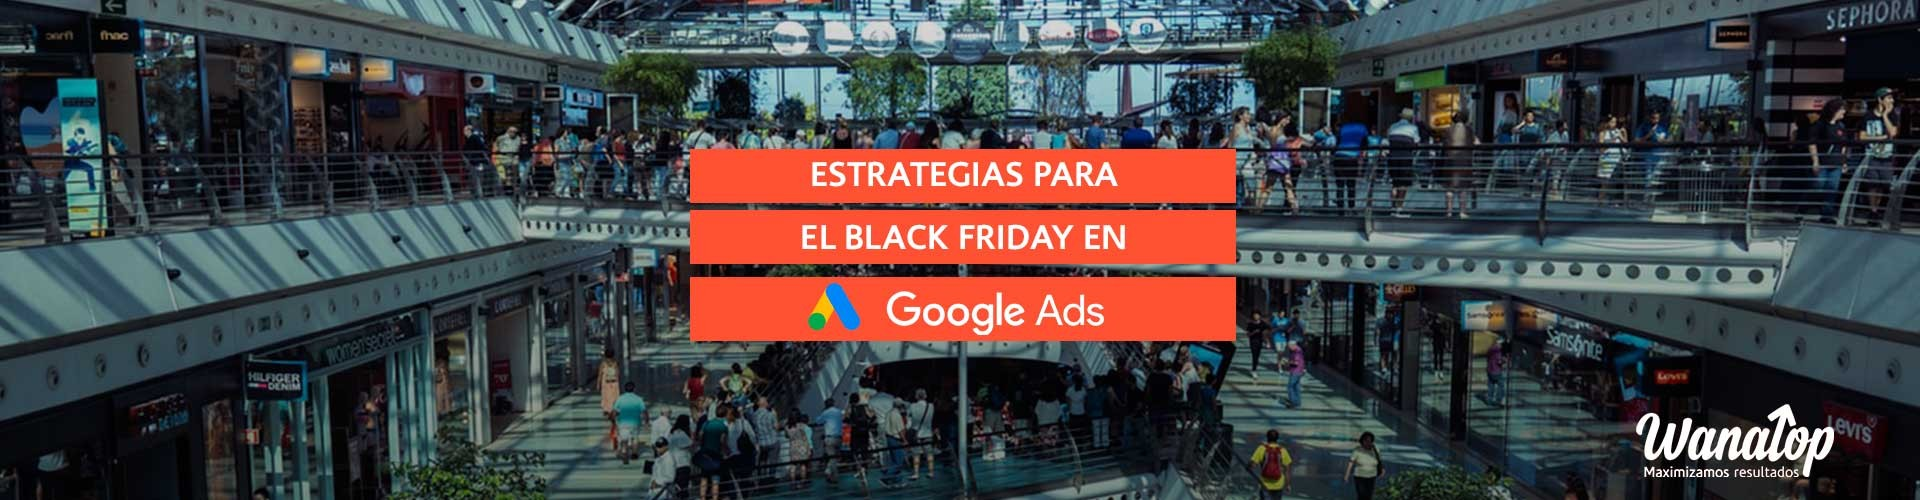 Estrategias de Google Ads para Black Friday